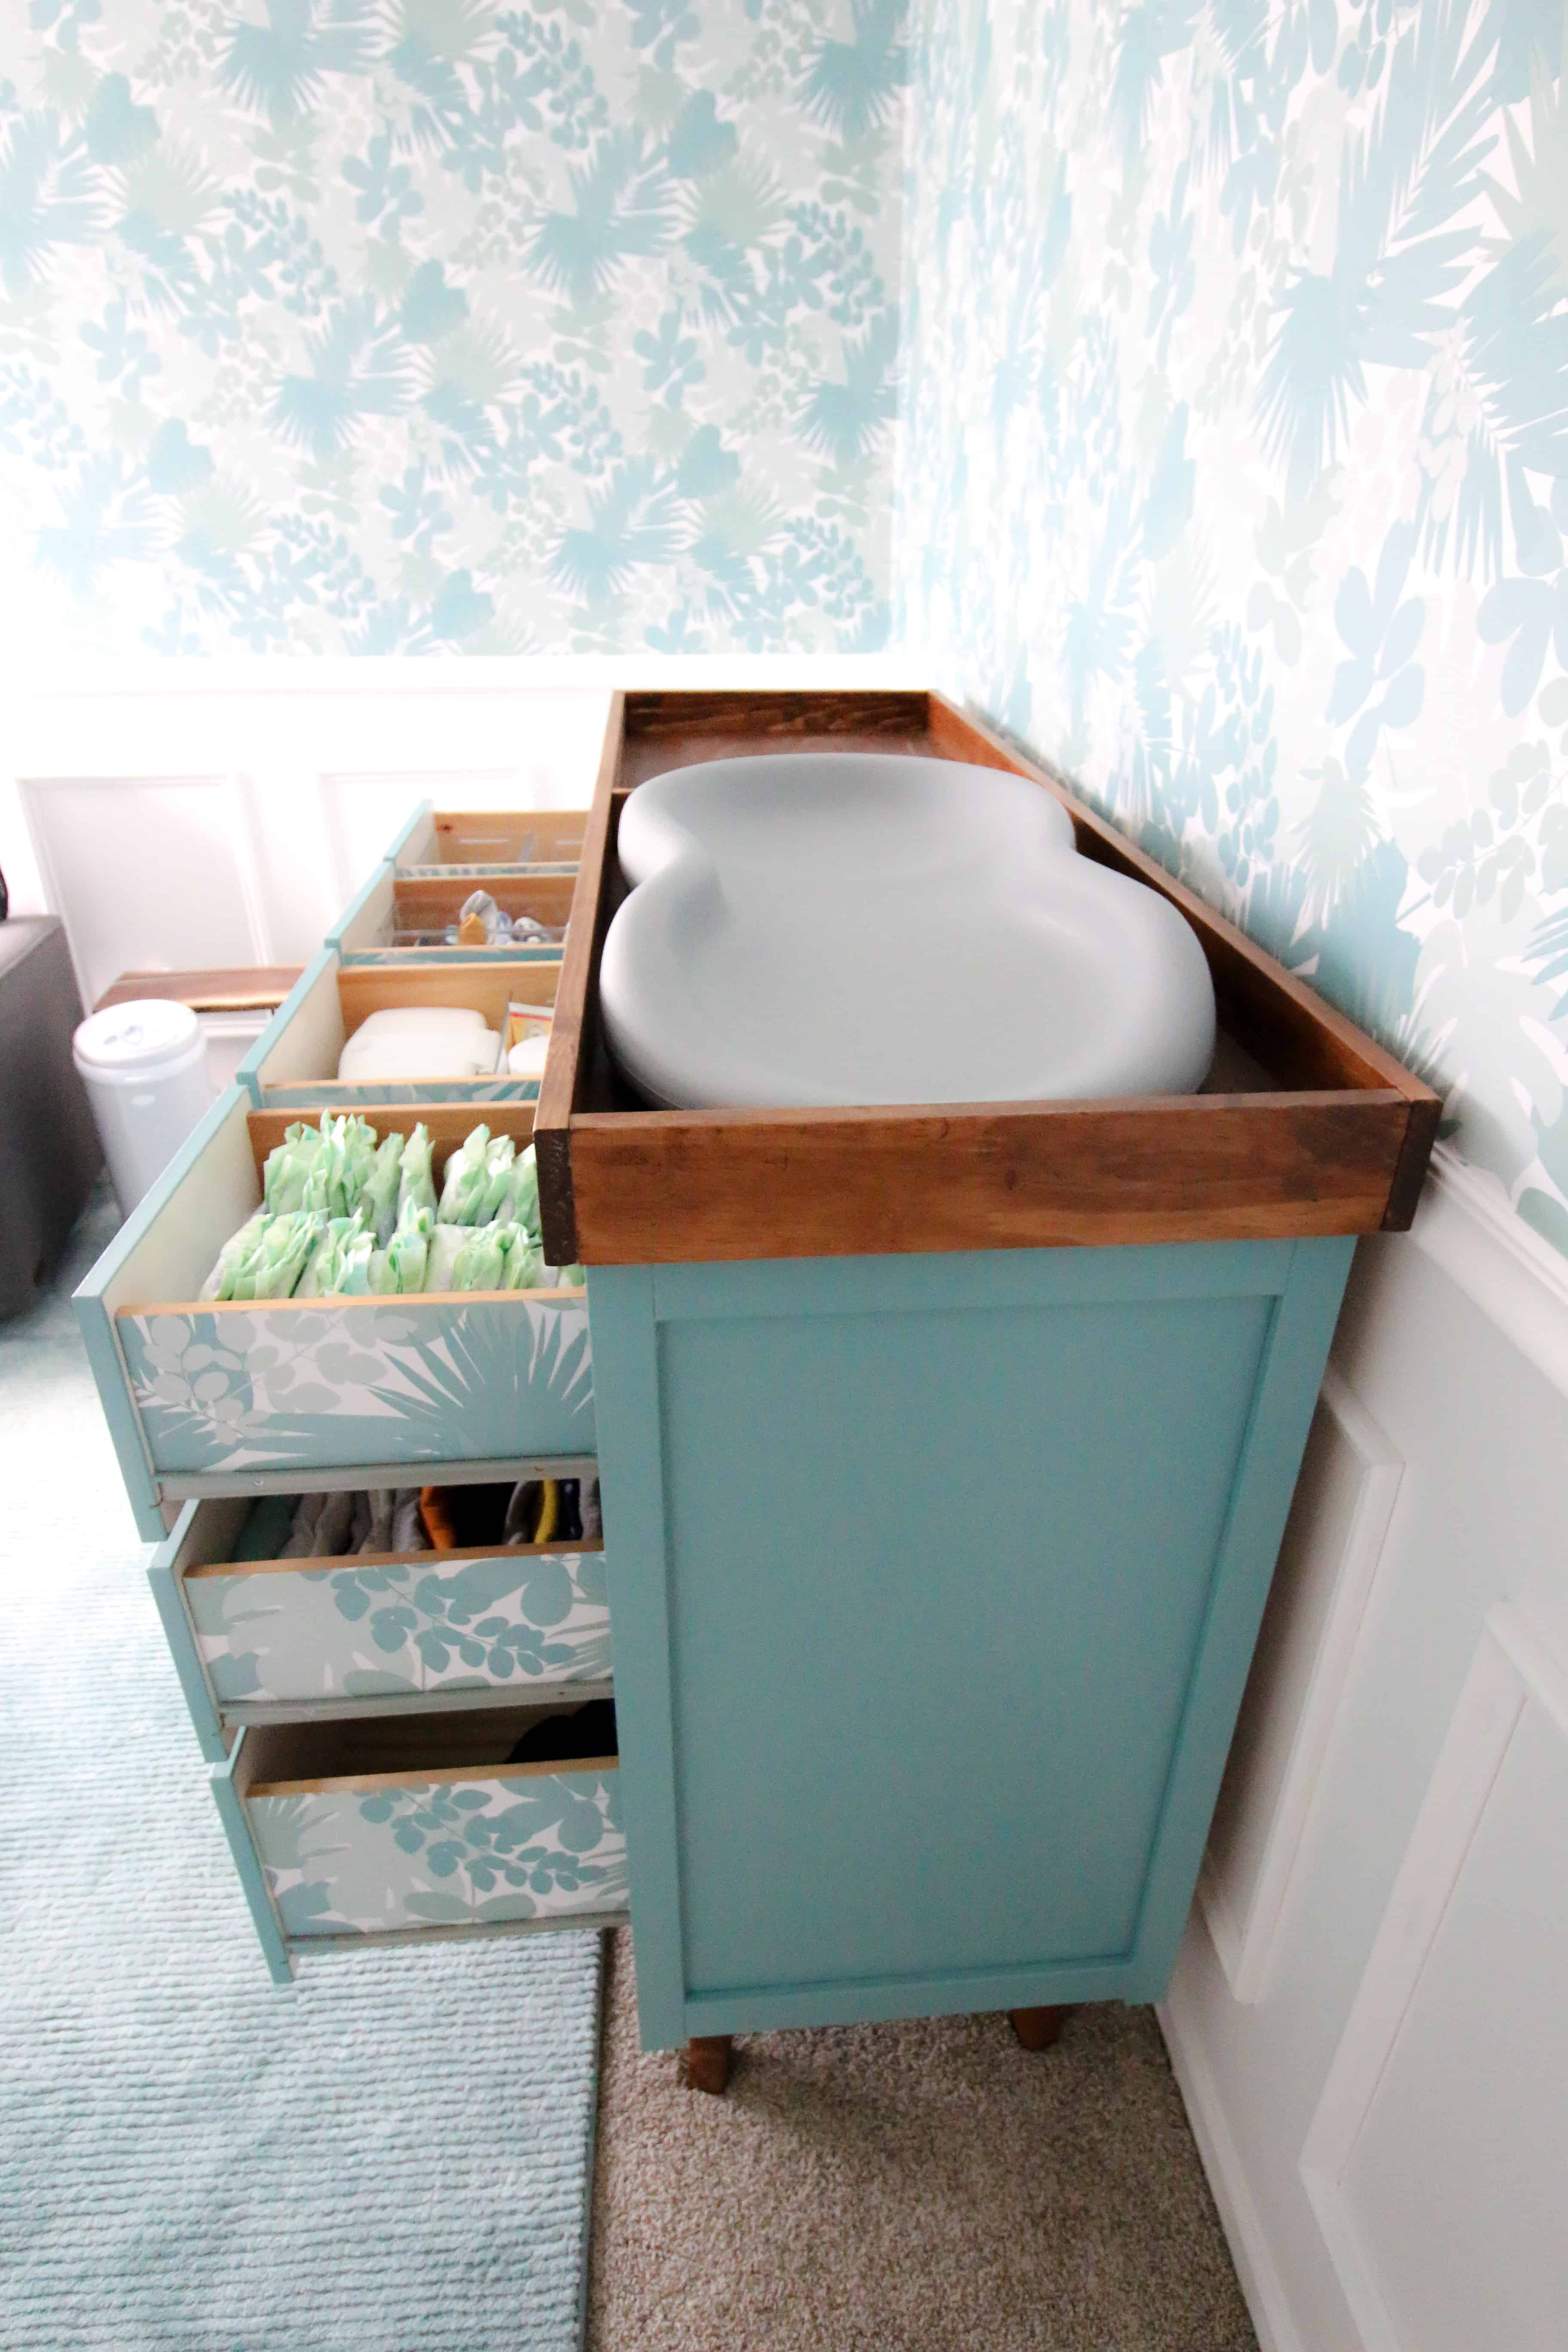 Best ideas about DIY Changing Table Topper . Save or Pin DIY Changing Table Topper Now.